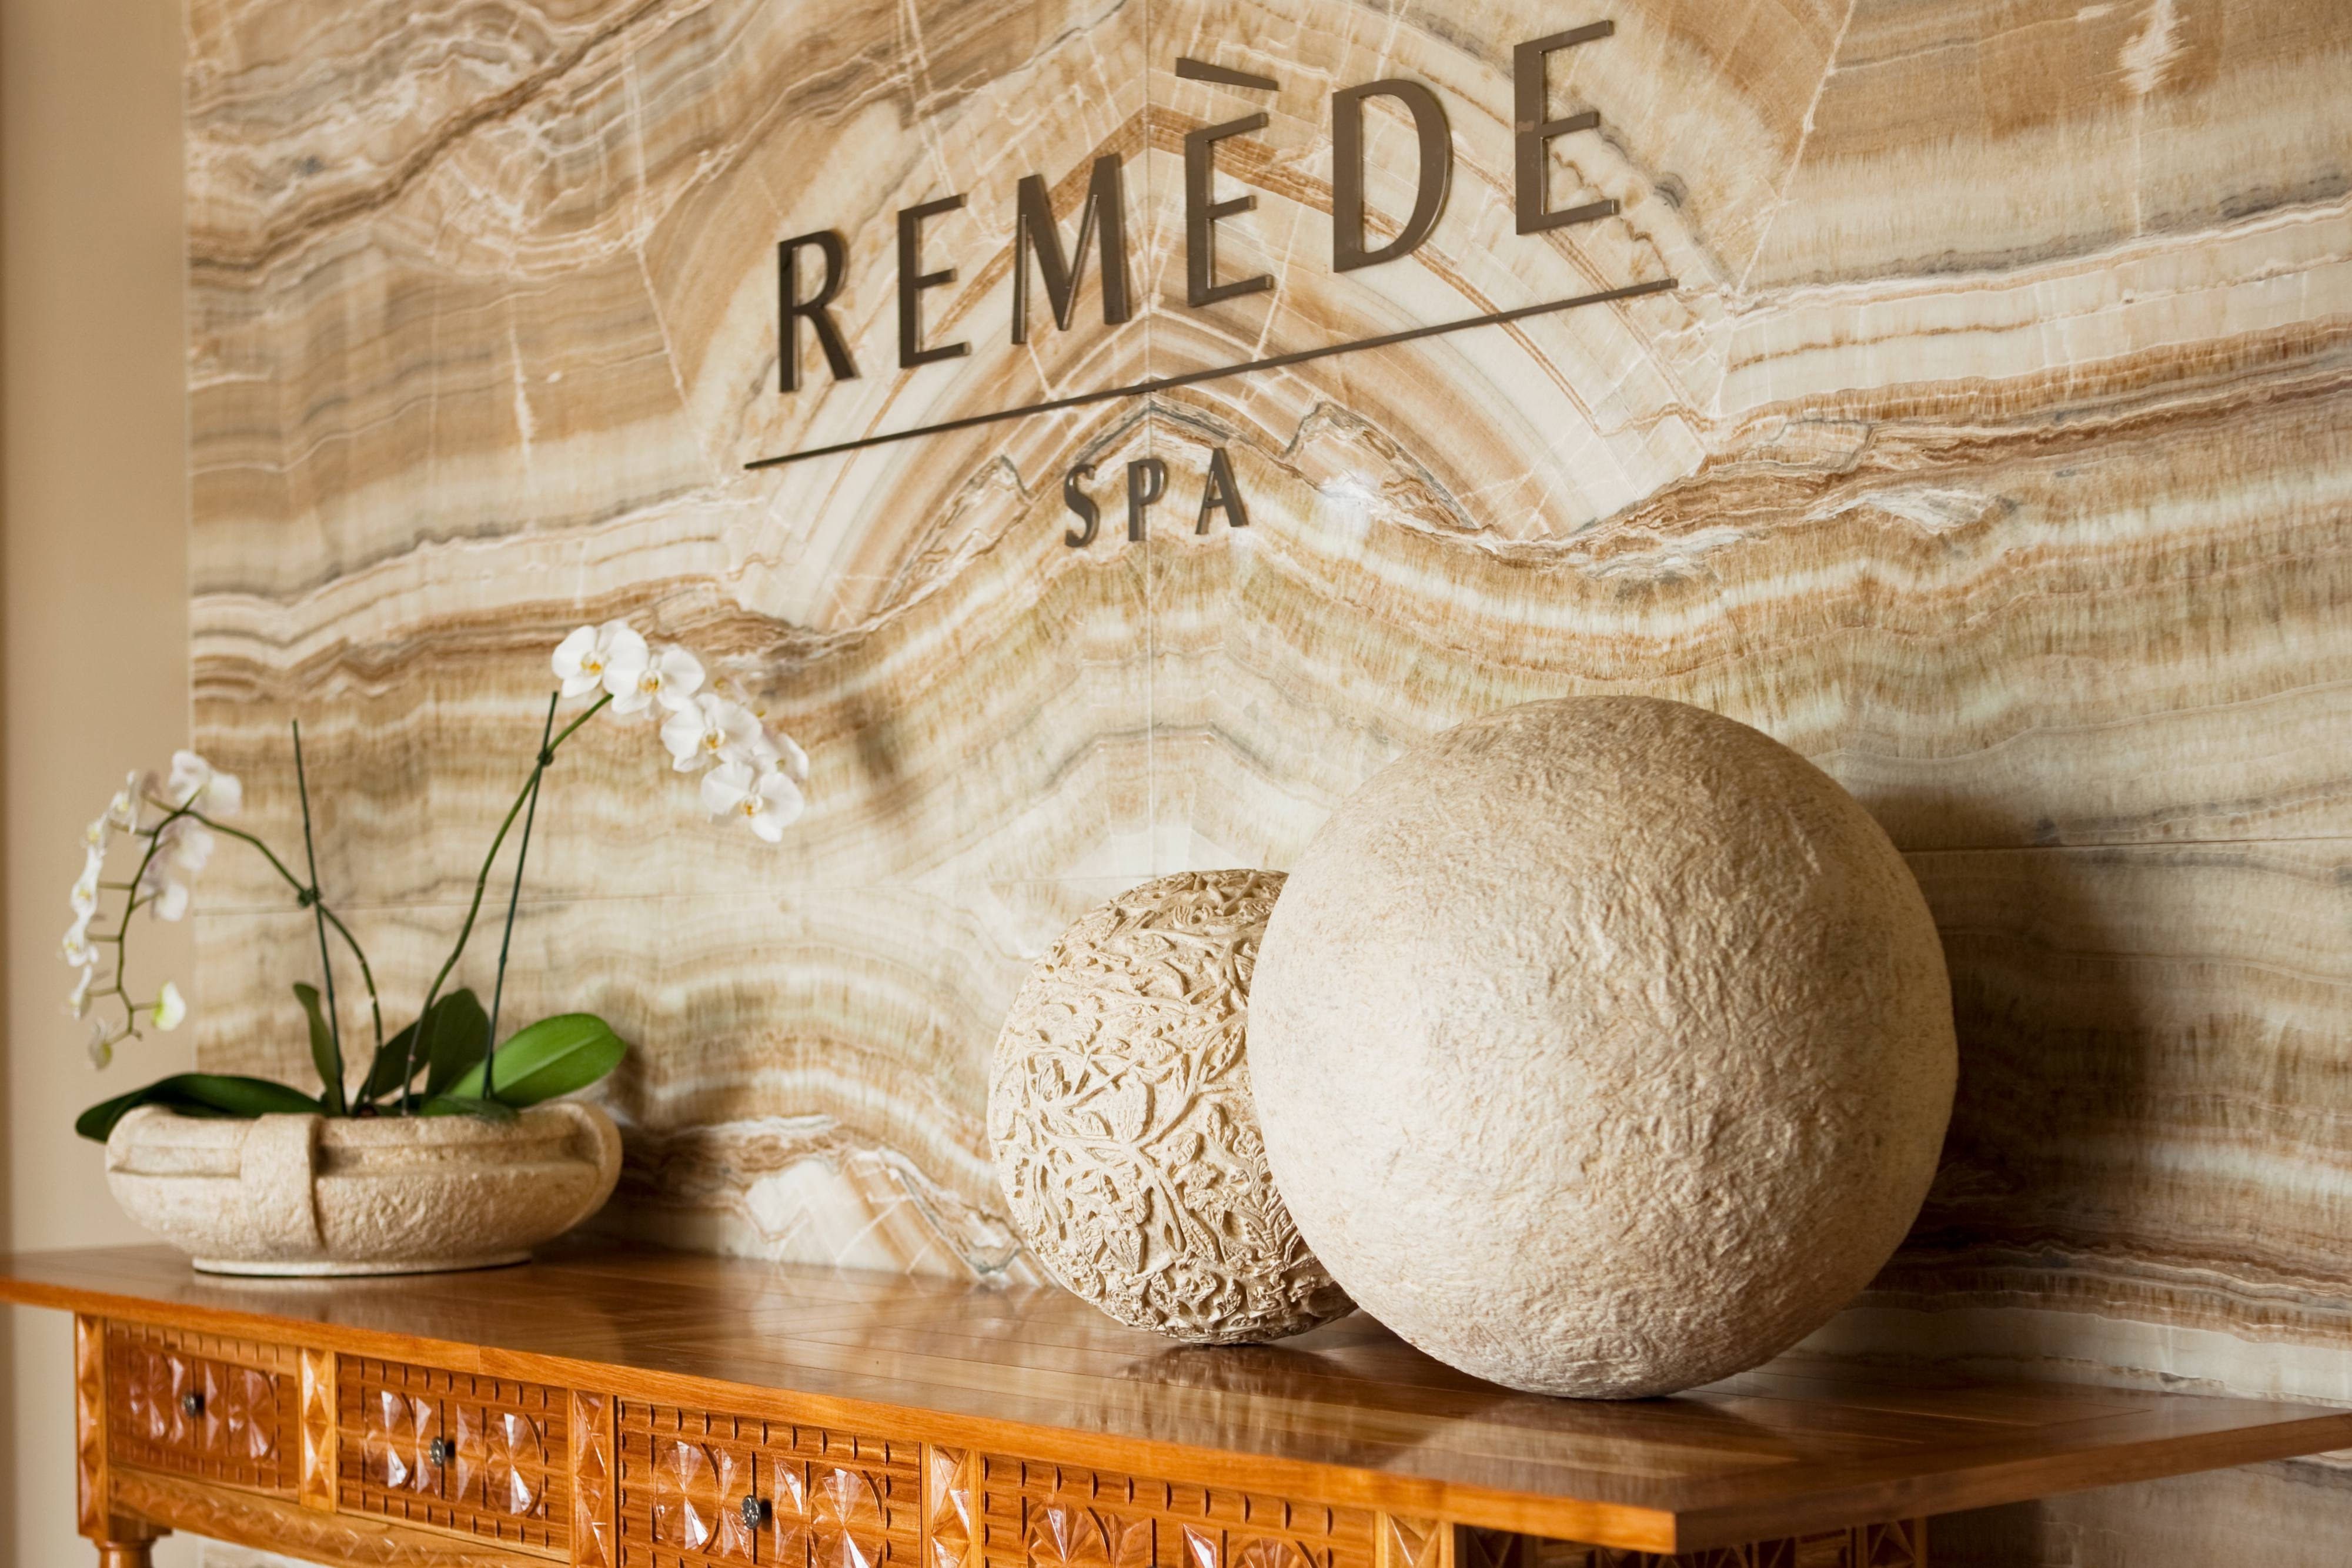 Remède Spa Entrance